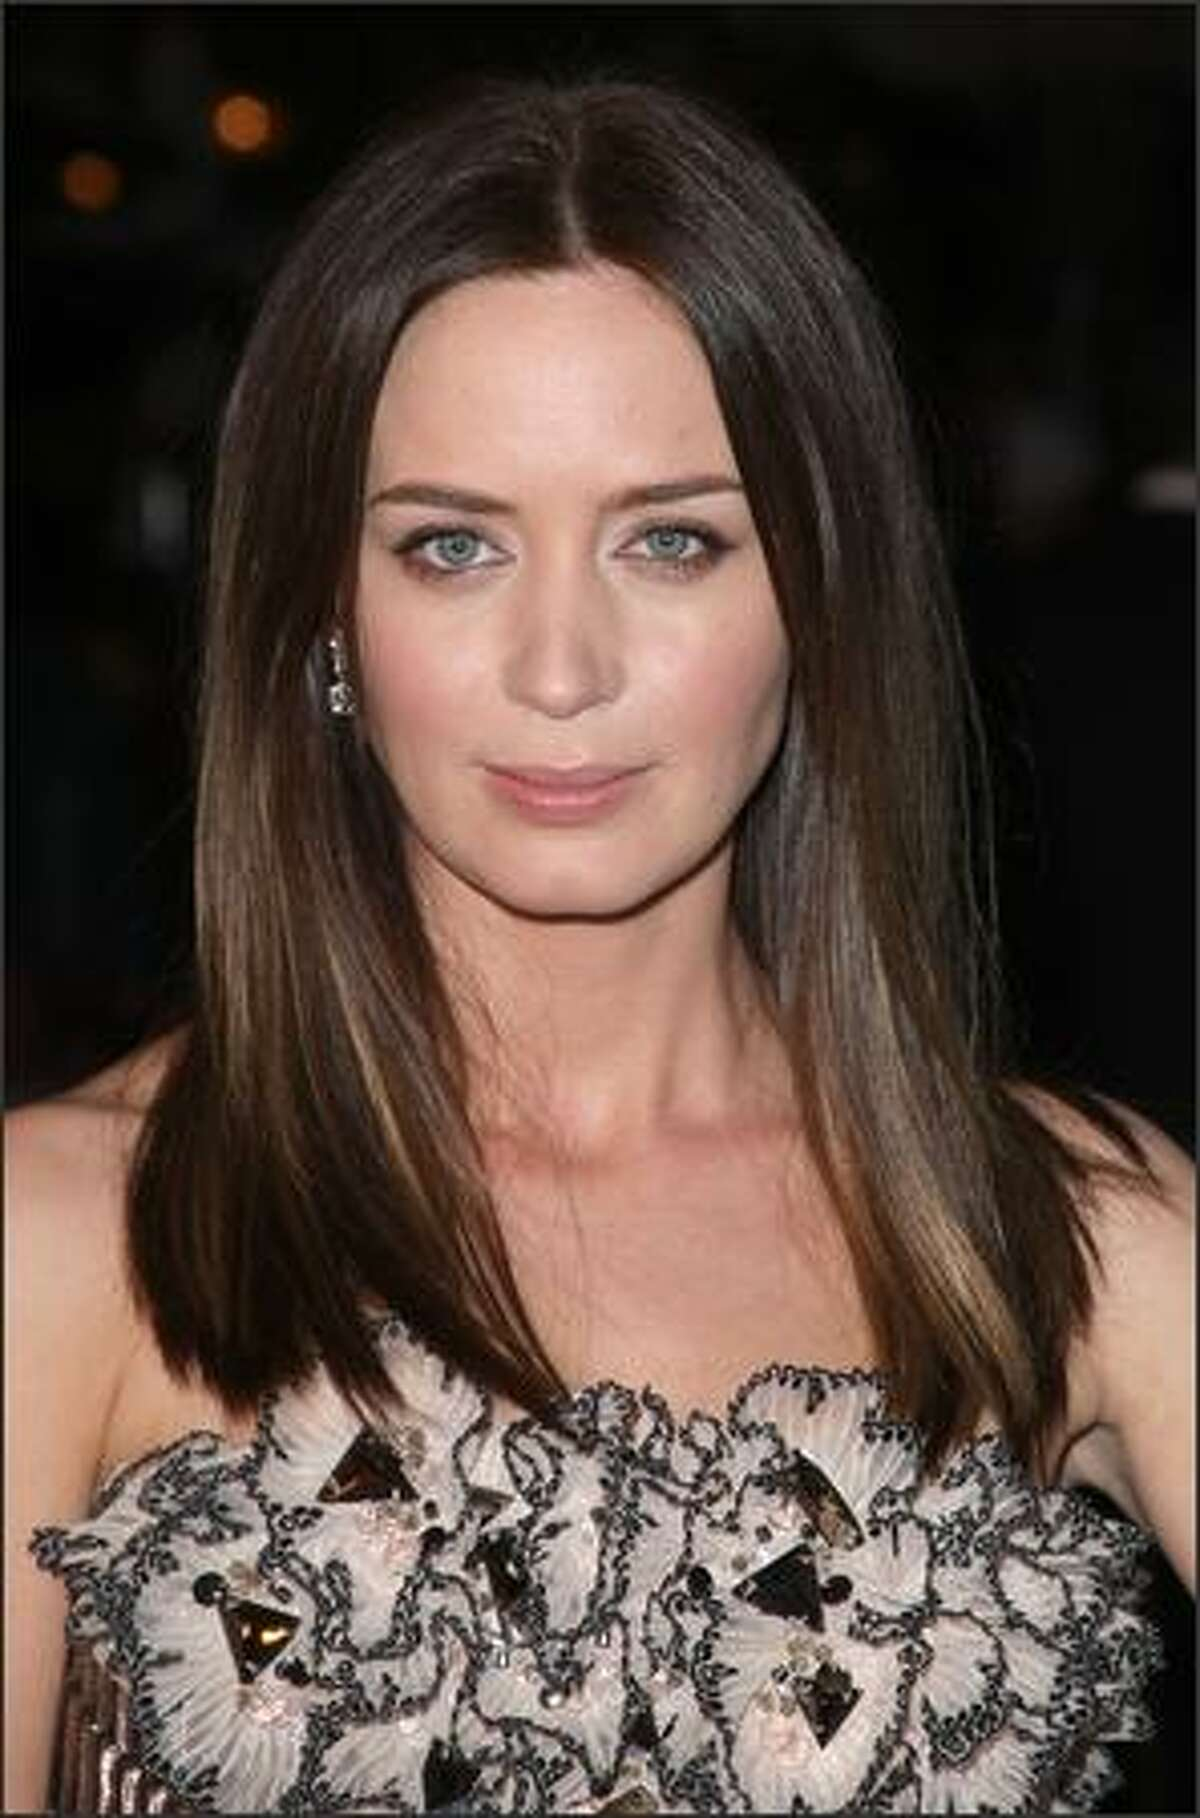 Actress Emily Blunt arrives at the Overture Film's screening of 'Sunshine Cleaning' held at Pacific Theaters at The Grove in Los Angeles, California.